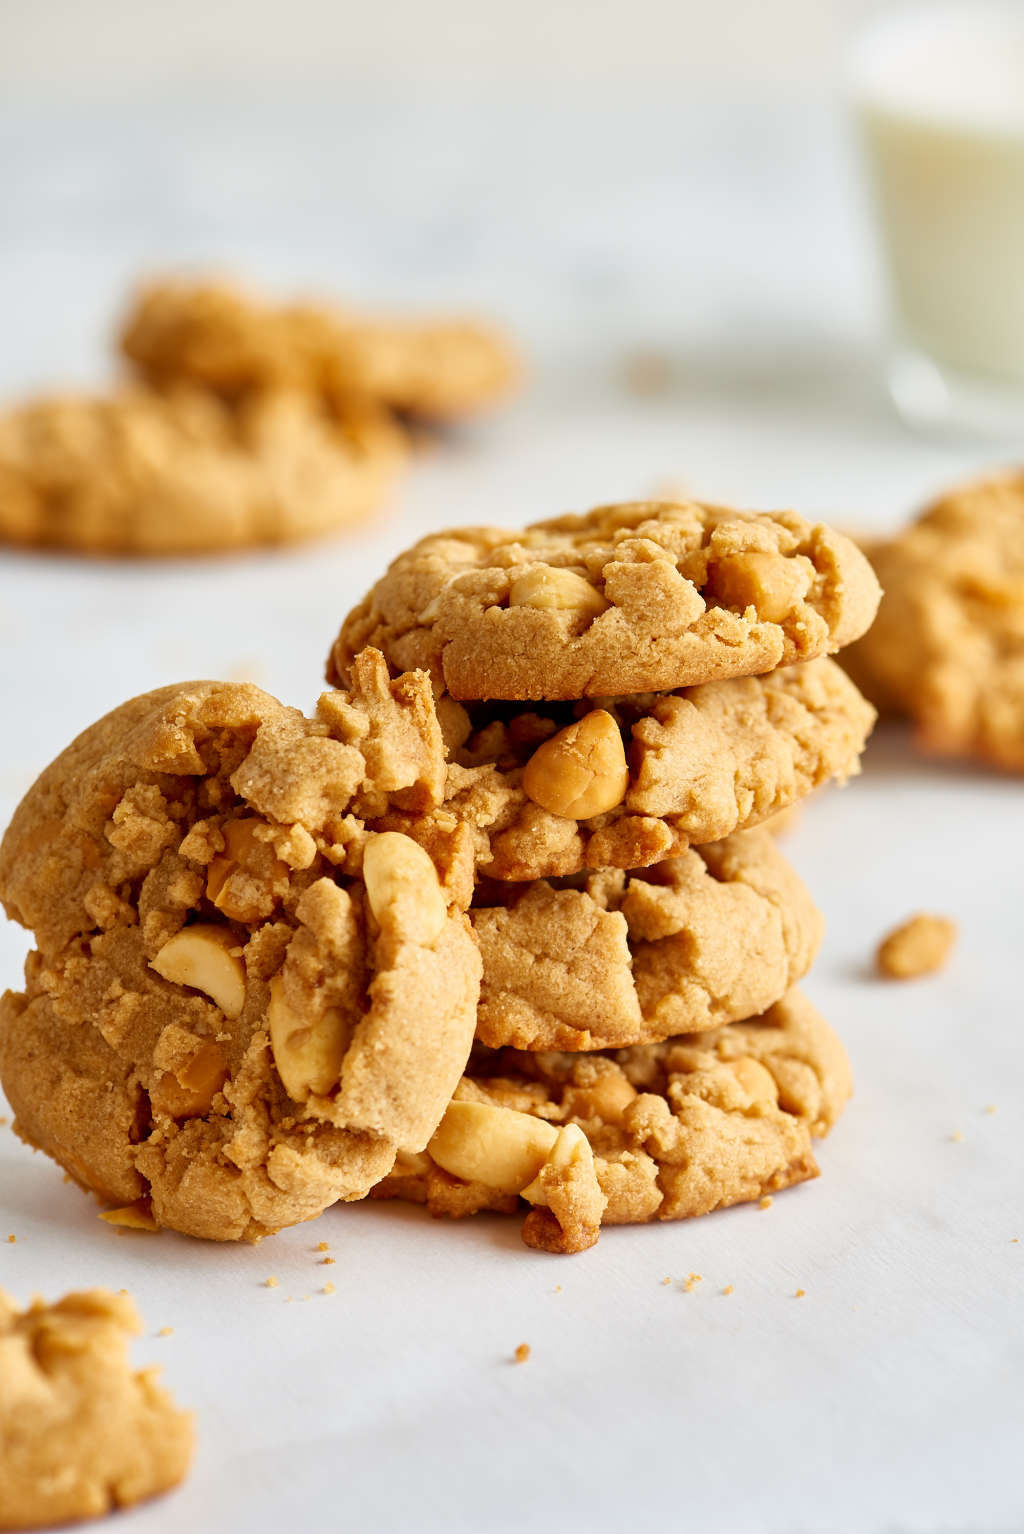 10 Peanut Butter Cookies to Make This Holiday Season